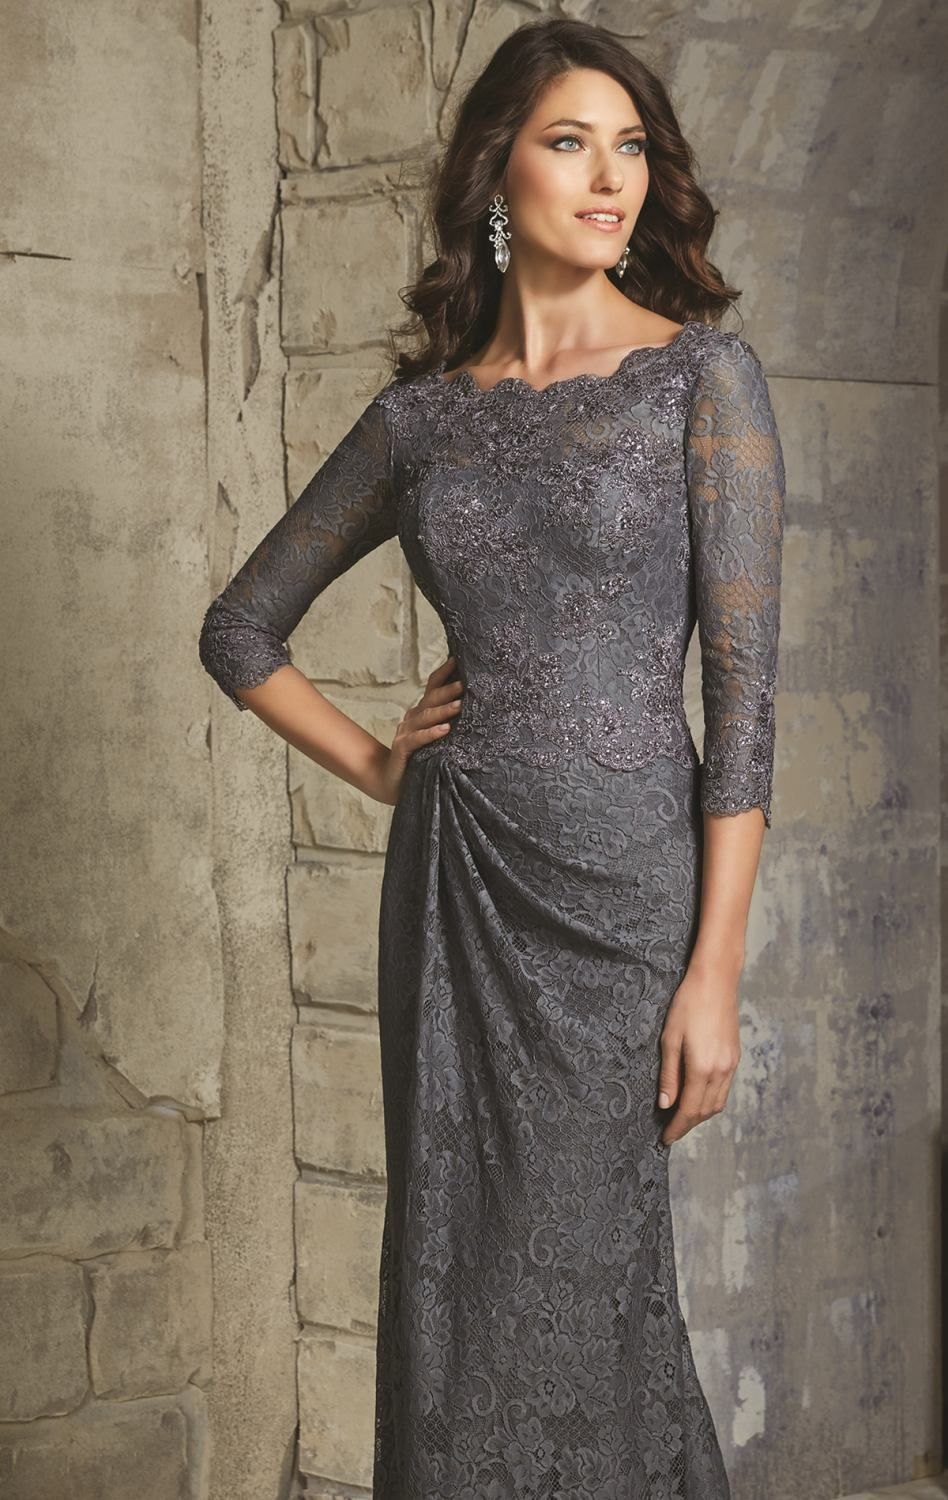 Look effortlessly beautiful in mgny by mori lee this evening